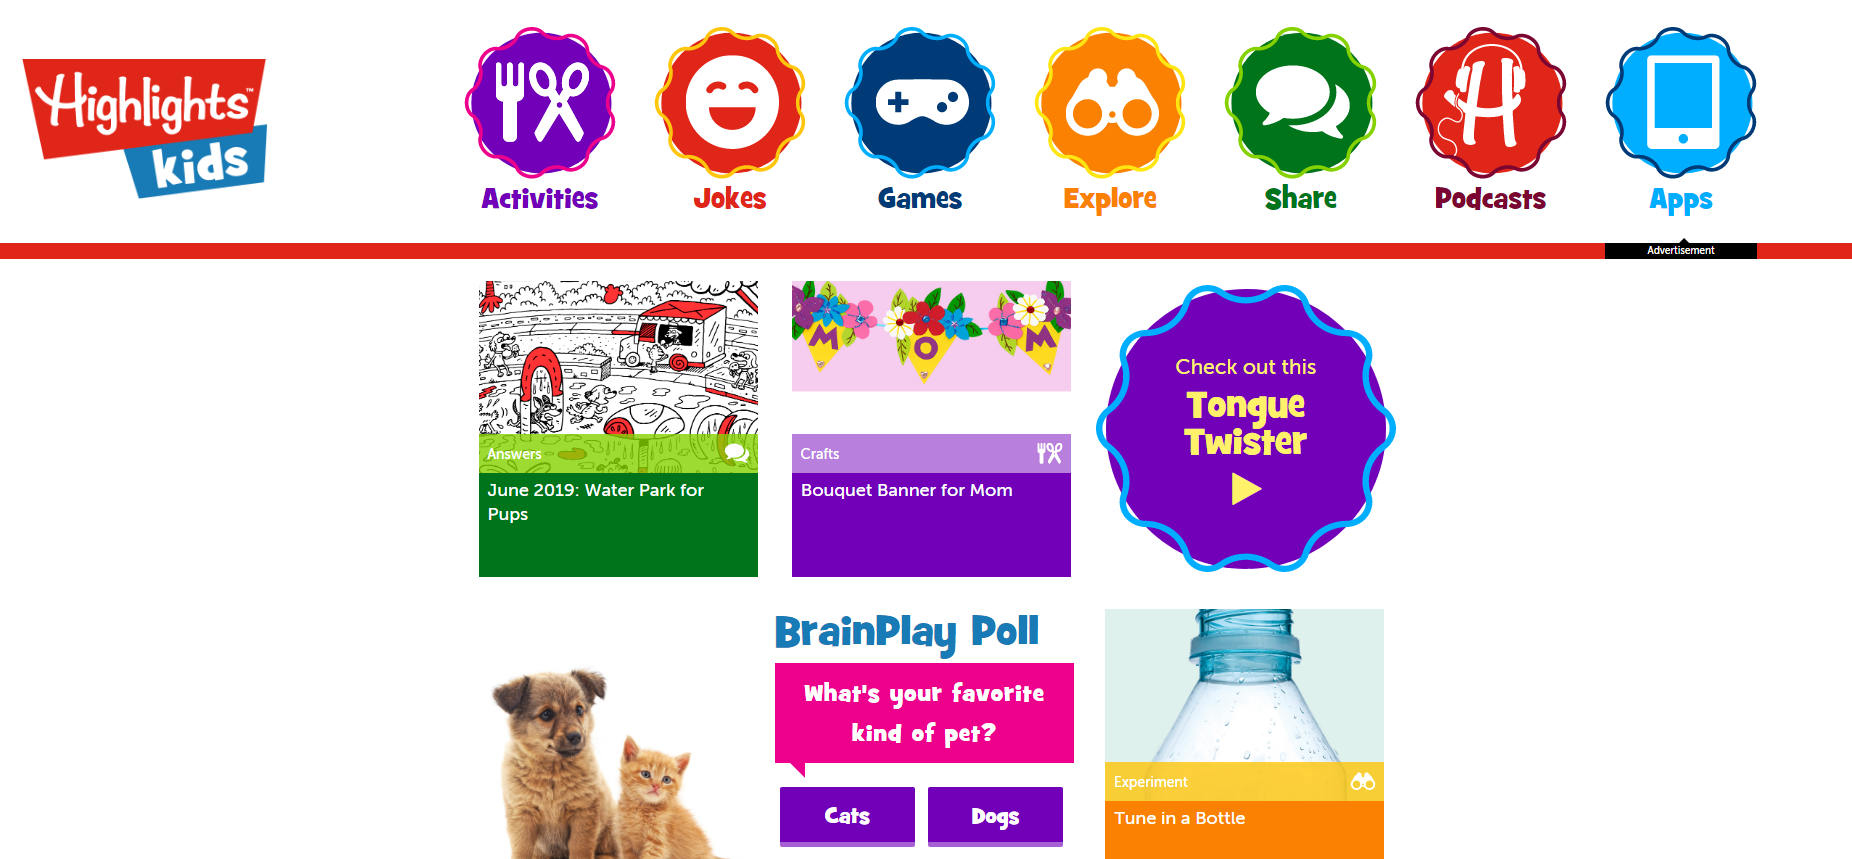 Highlights Kids website